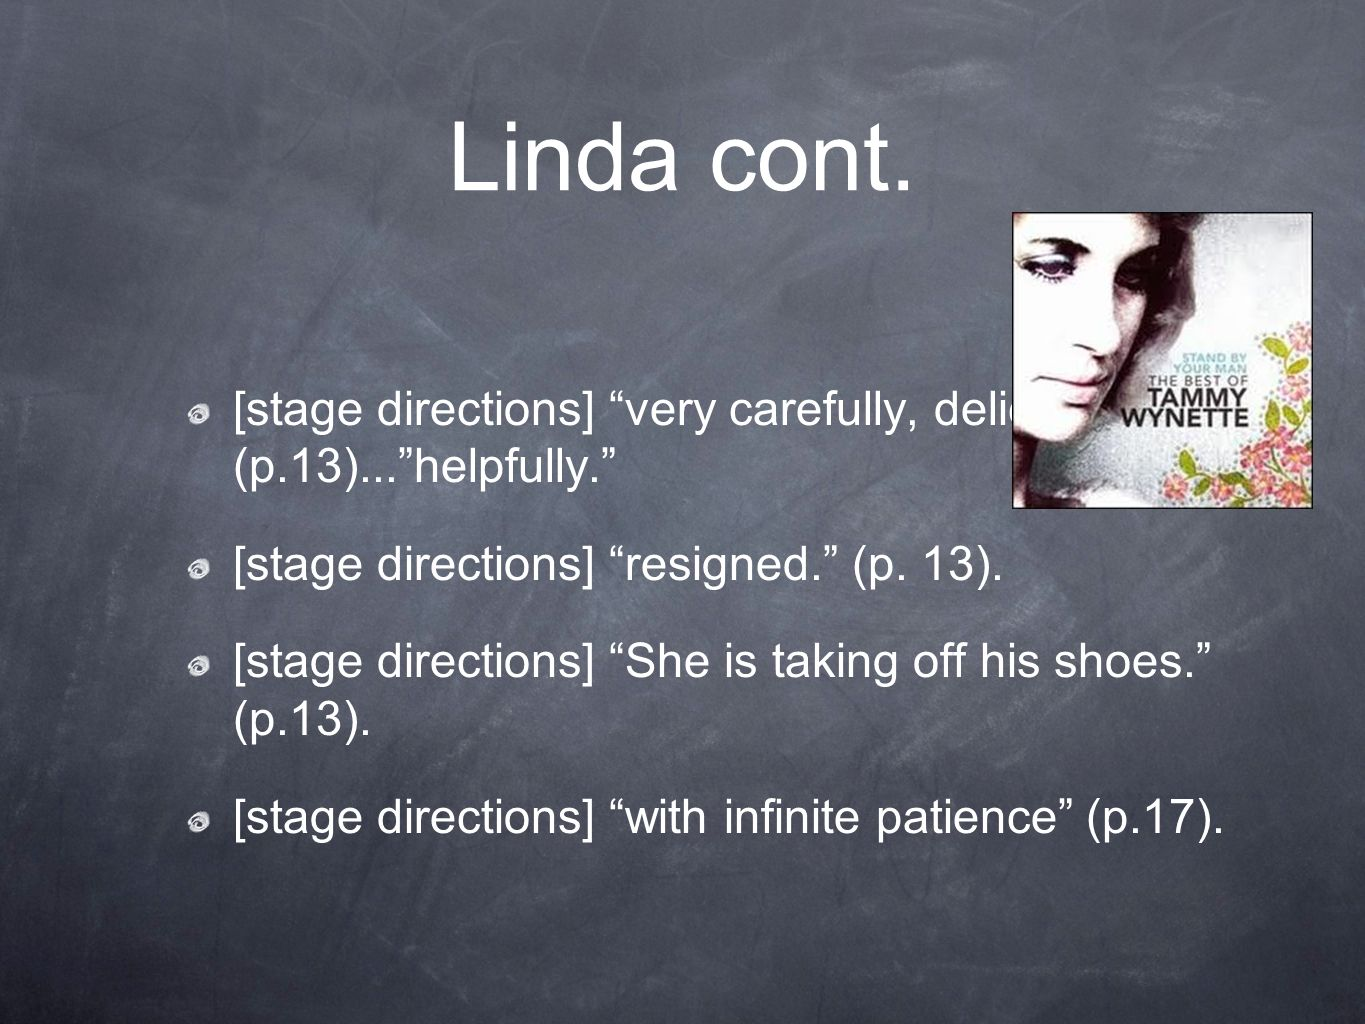 Linda cont. [stage directions] very carefully, delicately. (p.13)... helpfully. [stage directions] resigned. (p. 13).